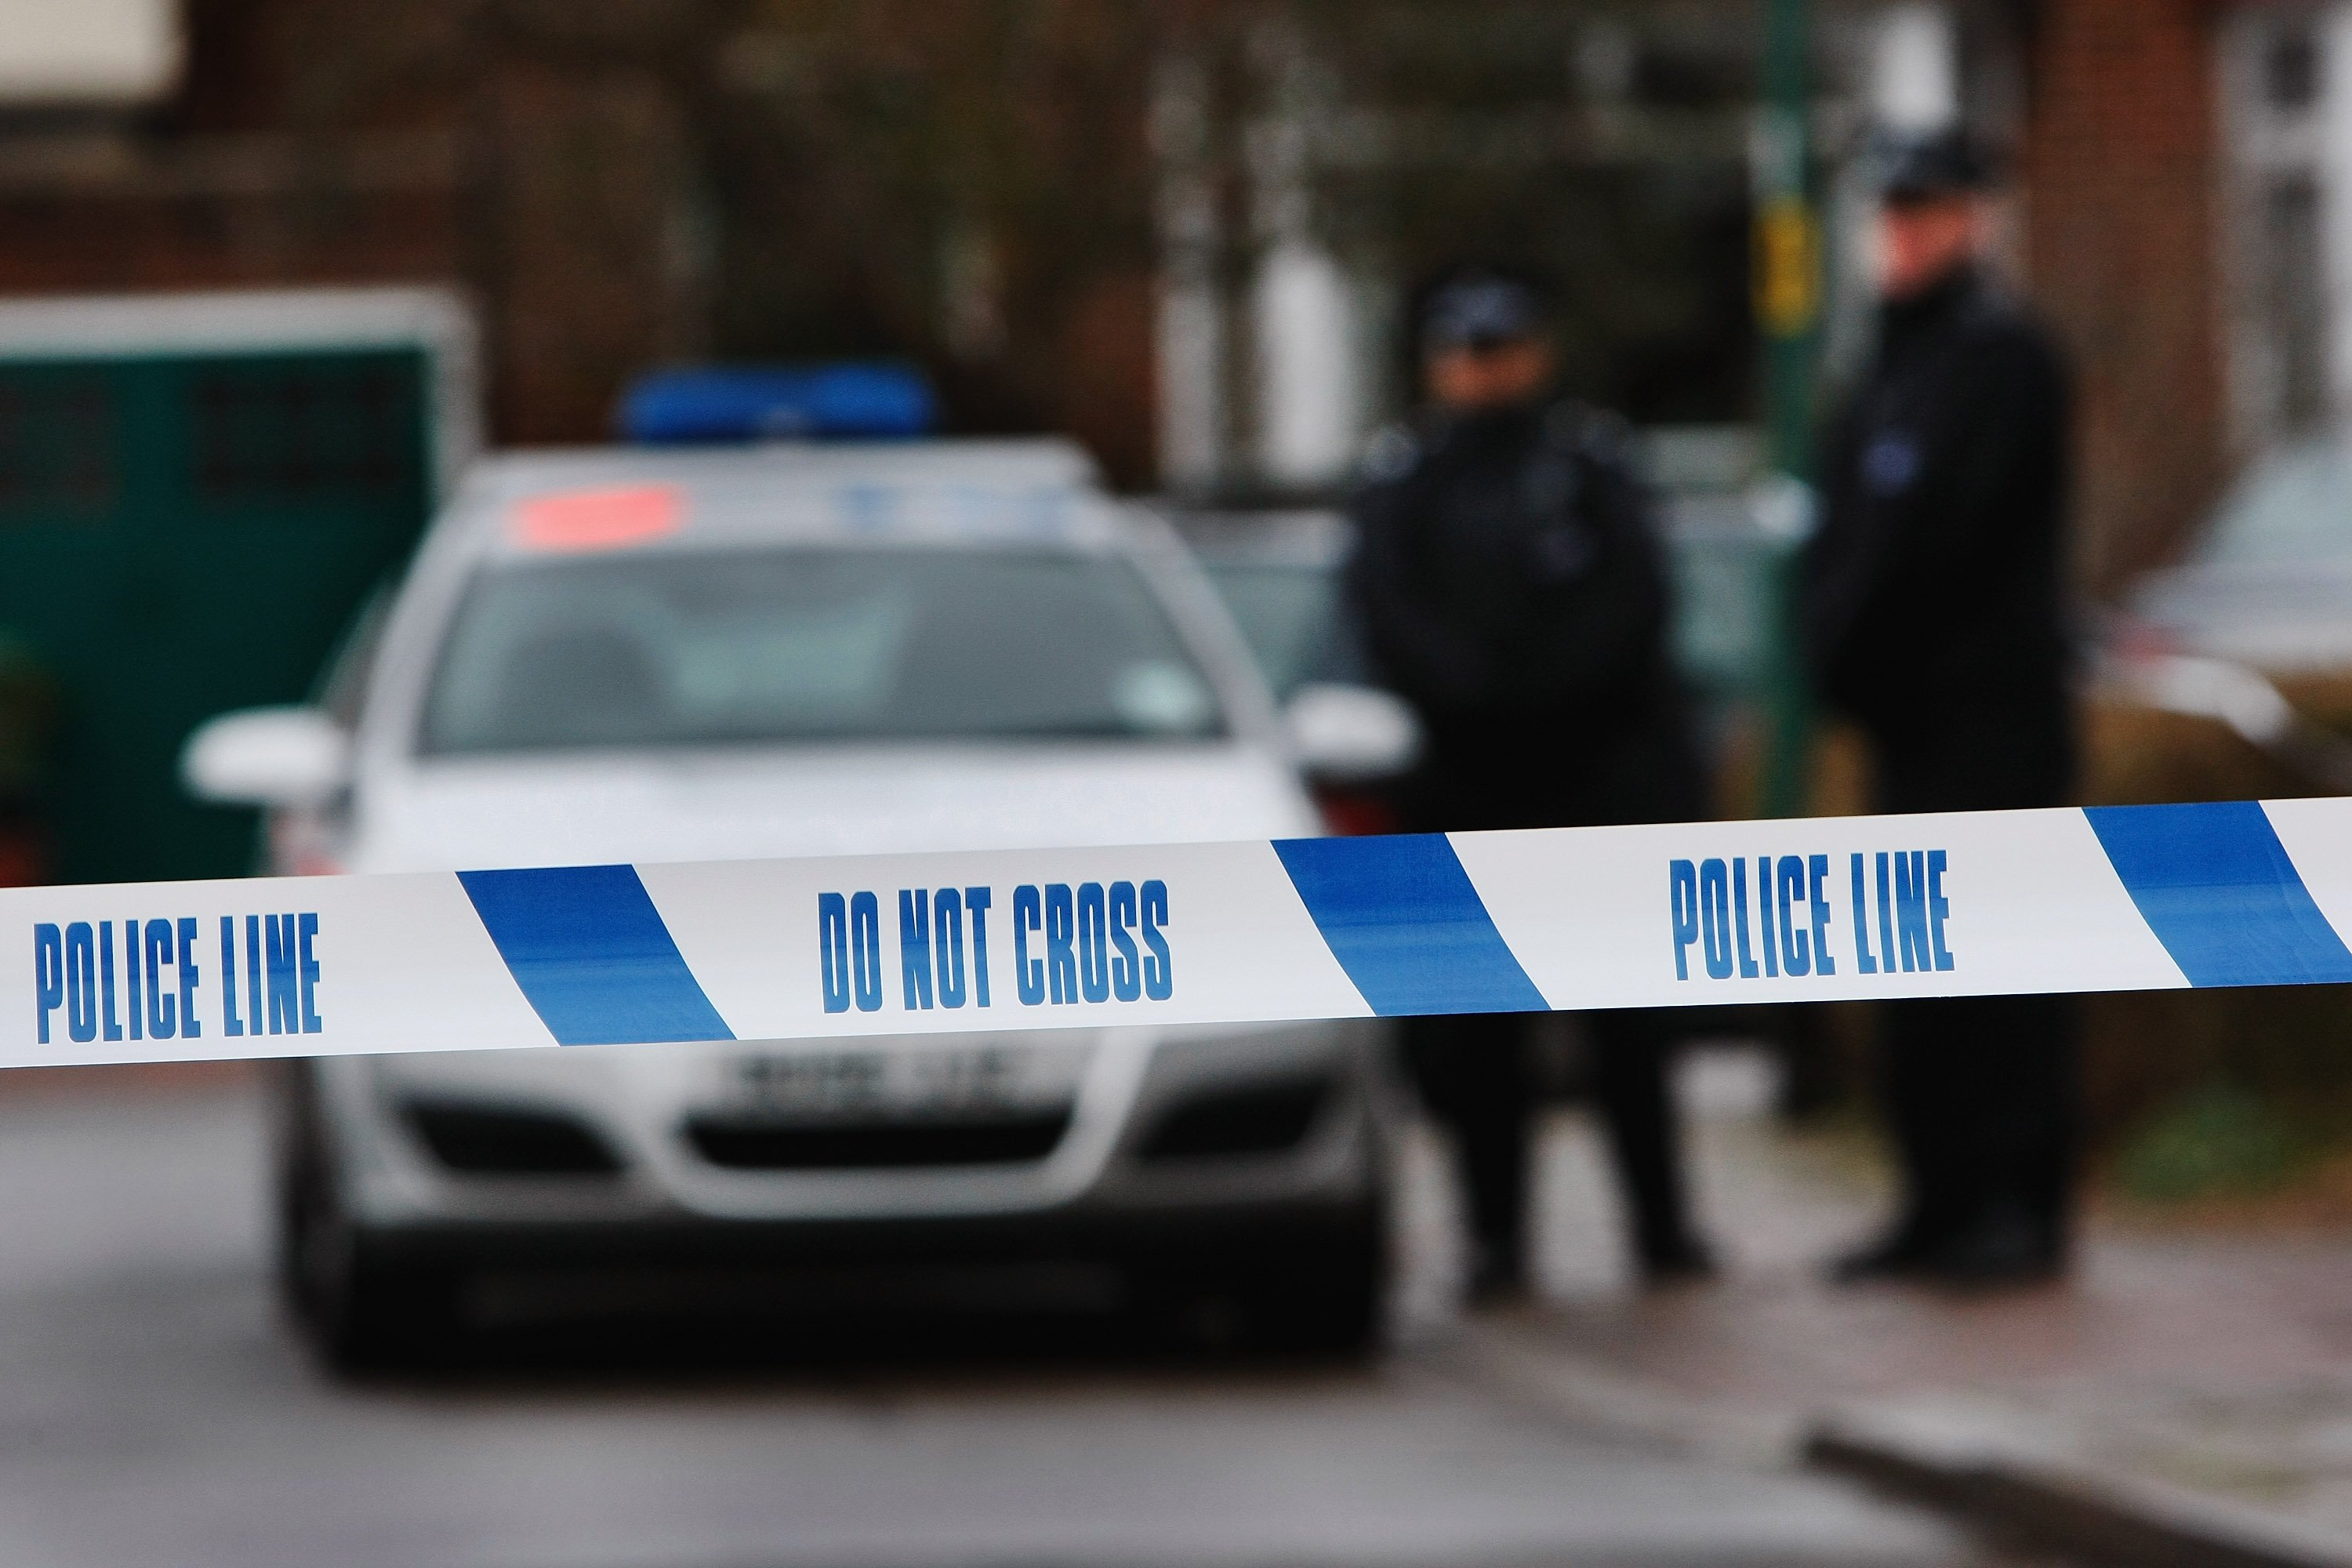 Pictured - Police tape as police officers stand guard outside on December 27, 2007 in London, England | Photo: Getty Images